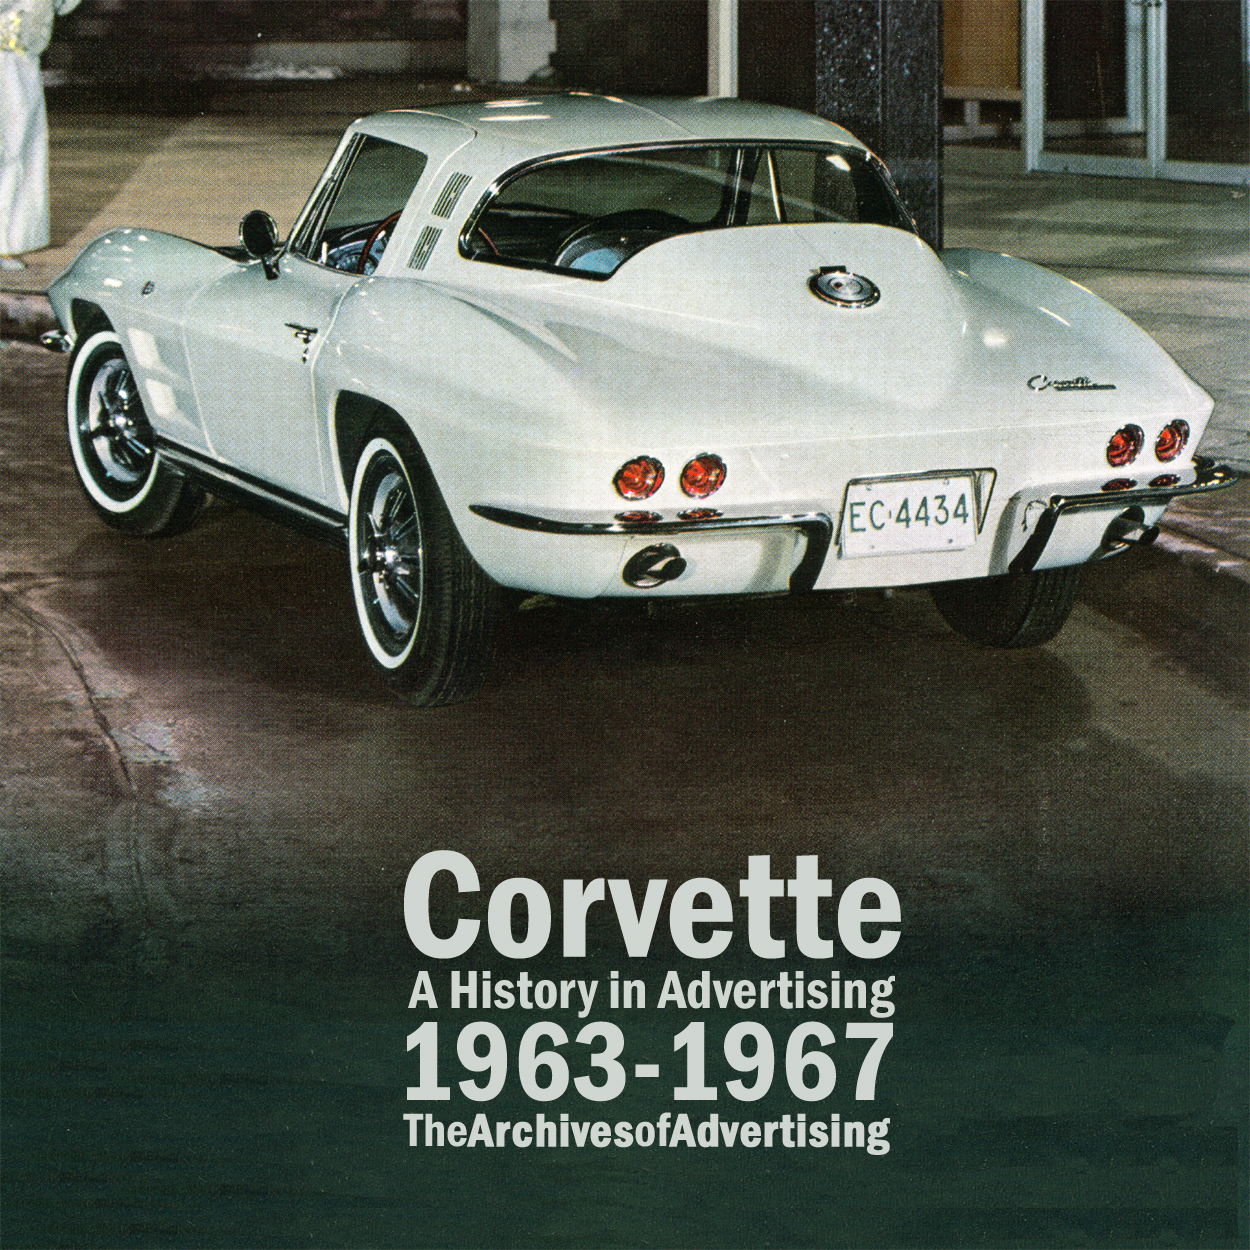 1963 1964 1965 1966 1967 Chevrolet Corvette ad CD-ROM: 100+ ads!